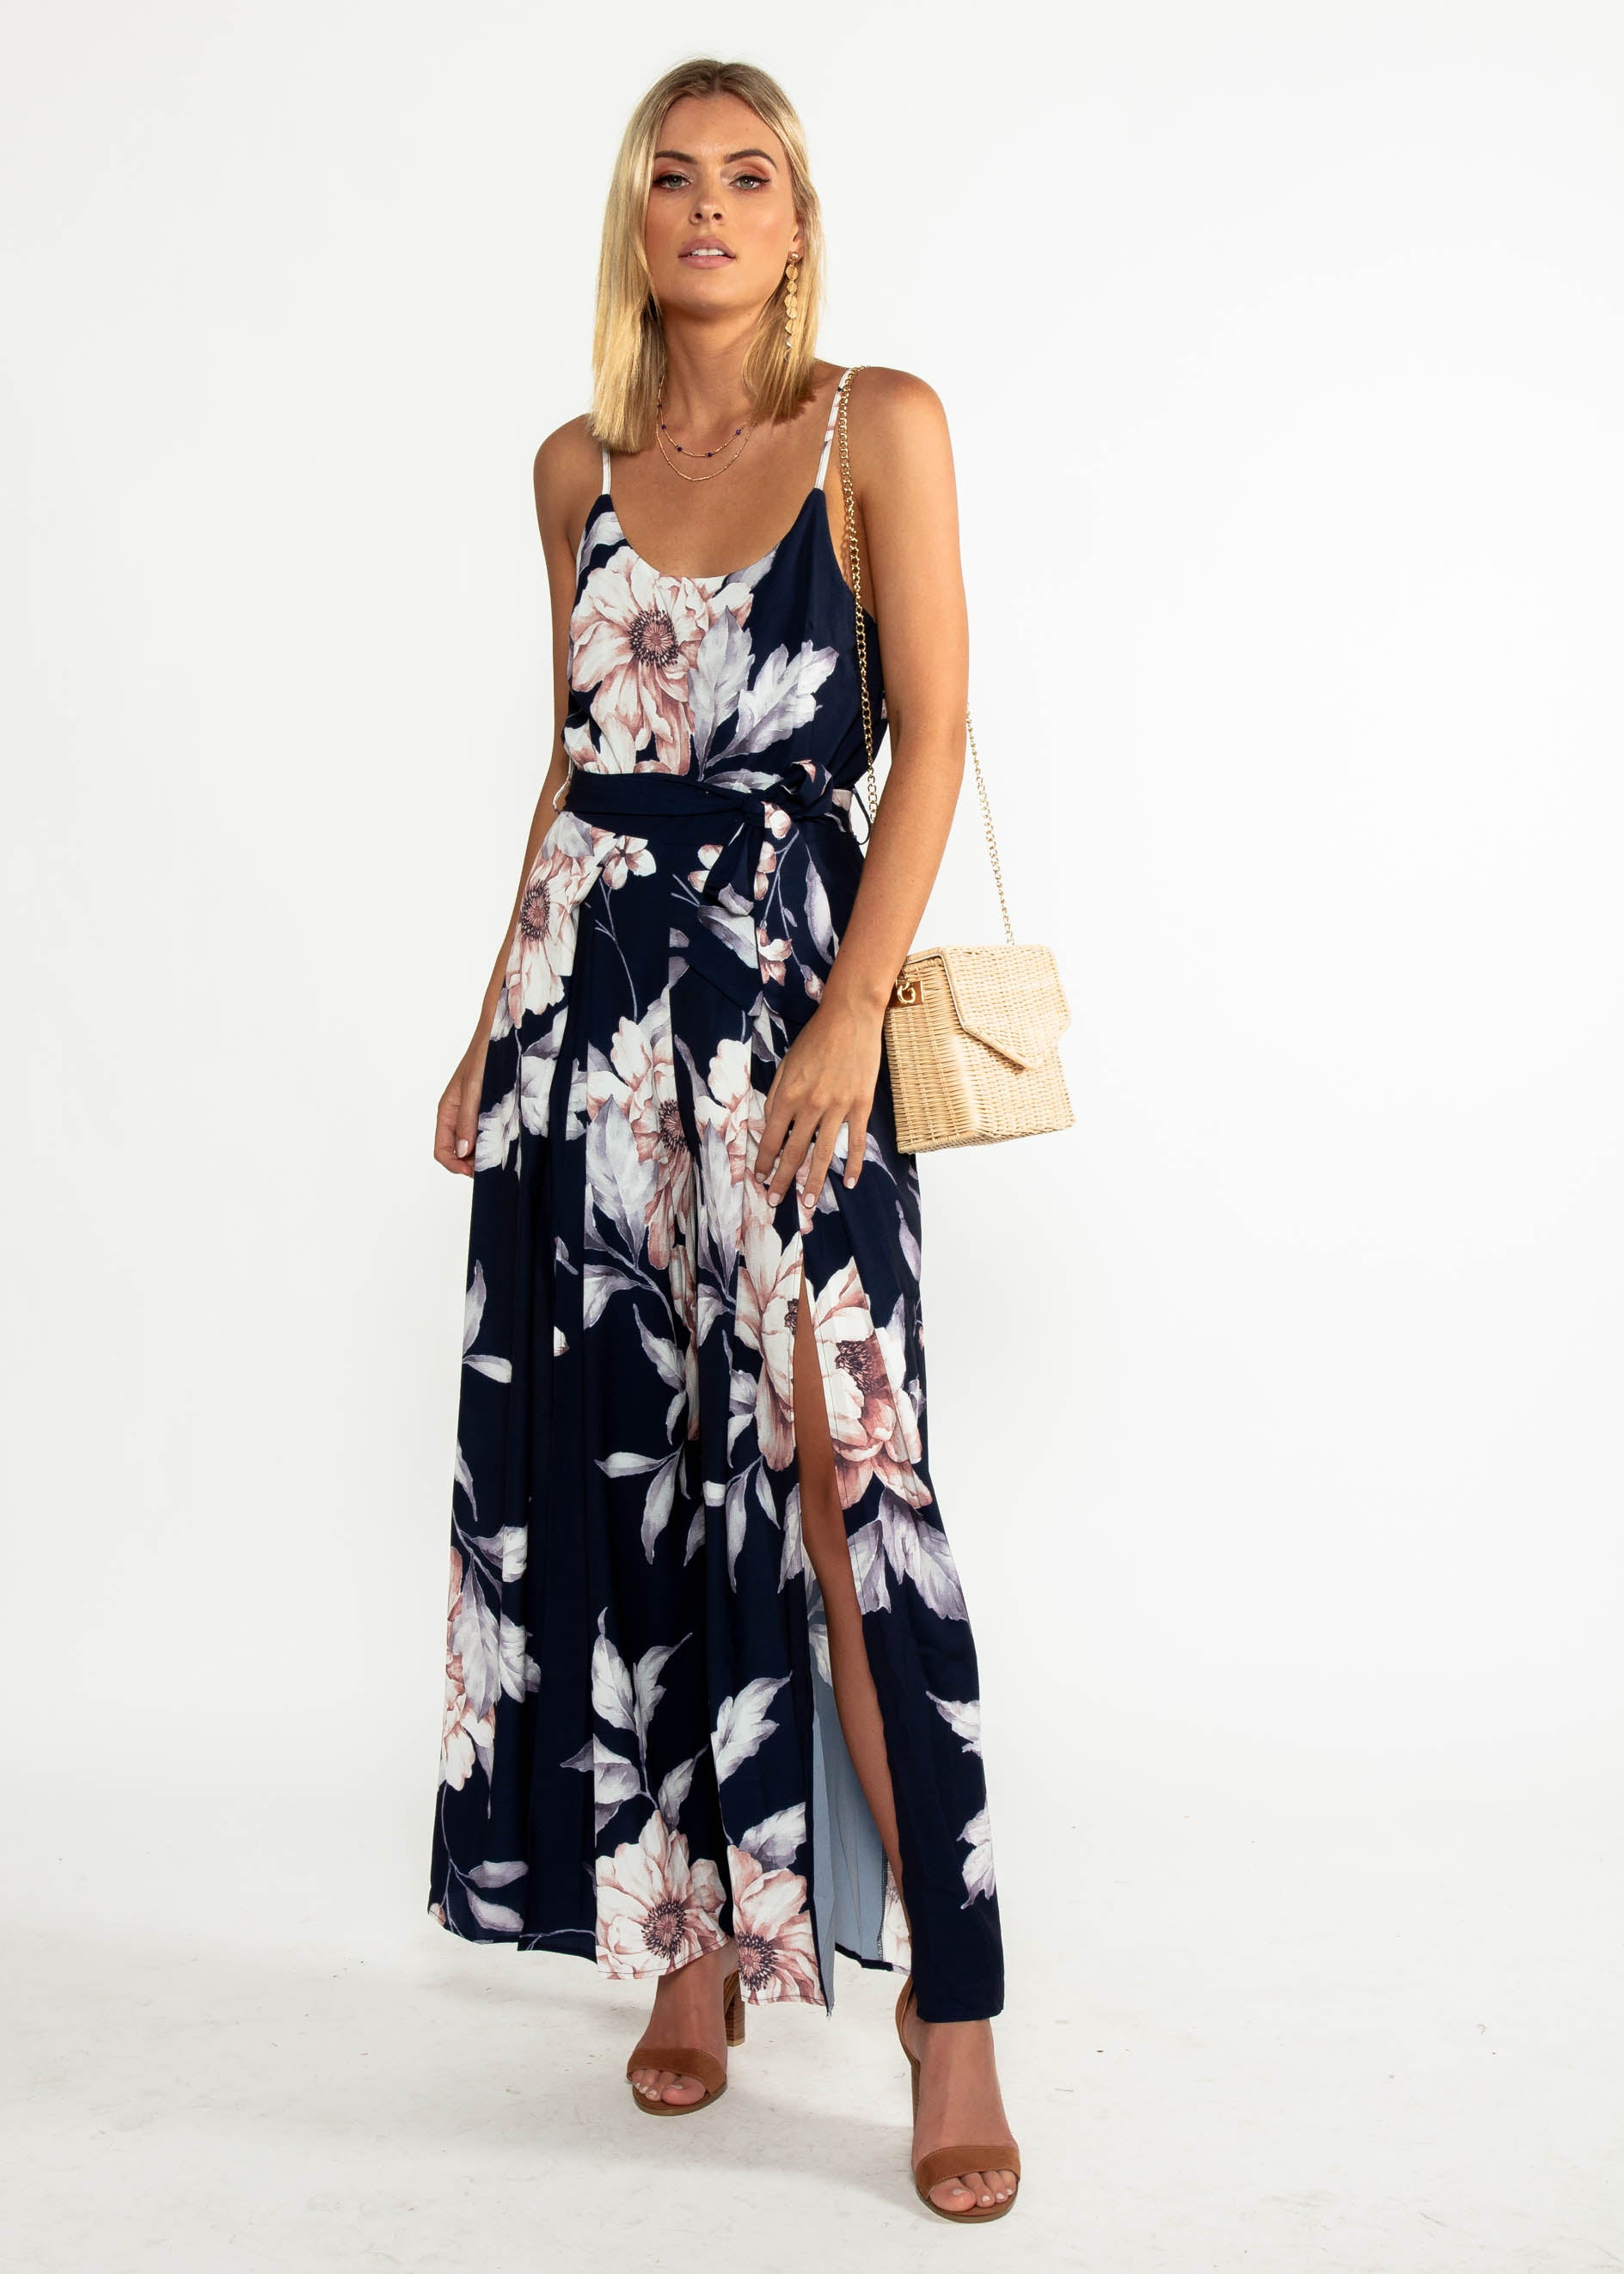 Electric Feeling Pantsuit w/ Tie - Navy Floral